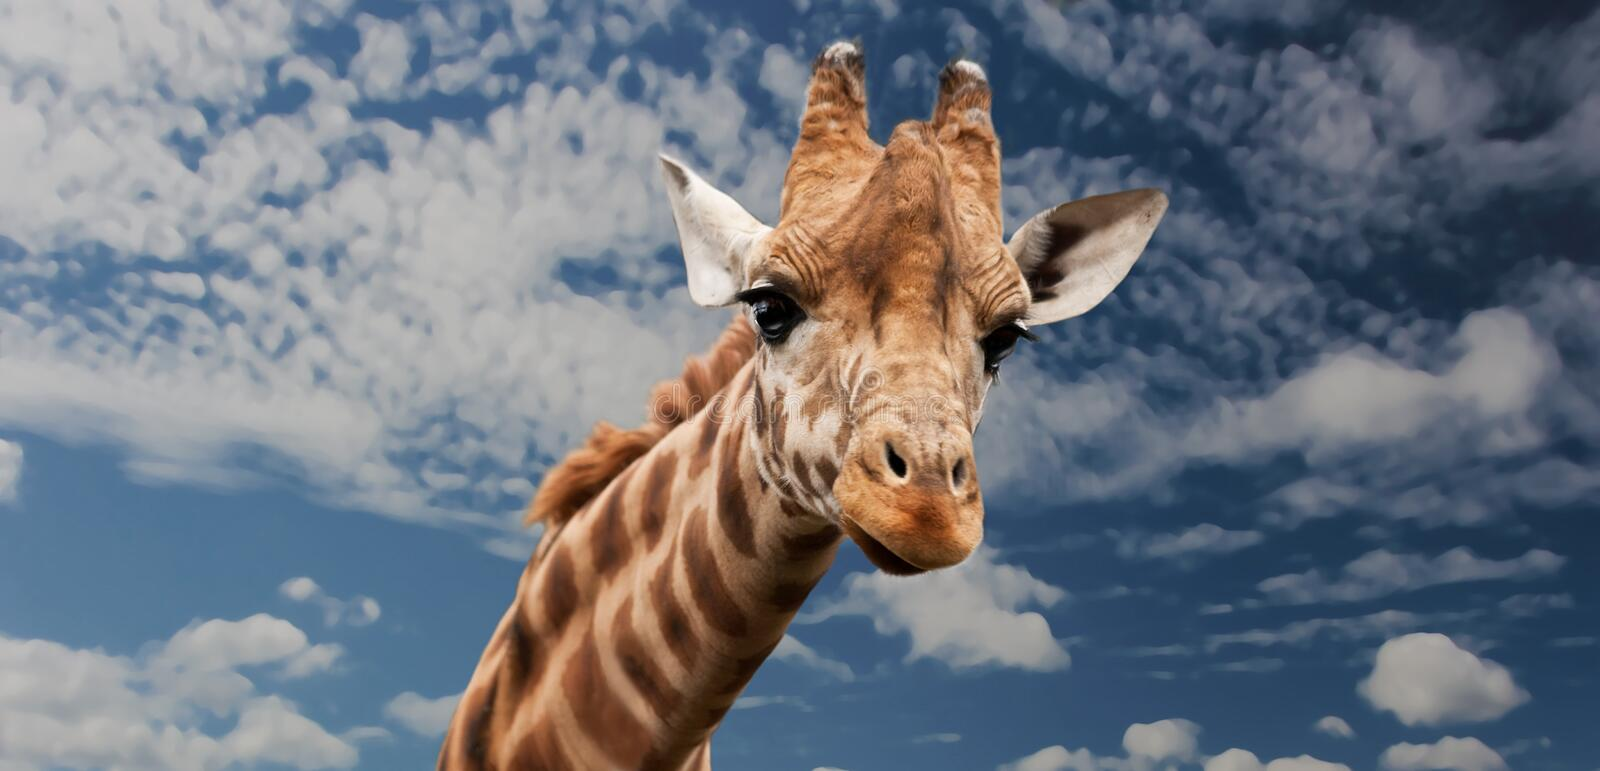 Brown Beige And White Giraffe Under White Clouds Free Public Domain Cc0 Image